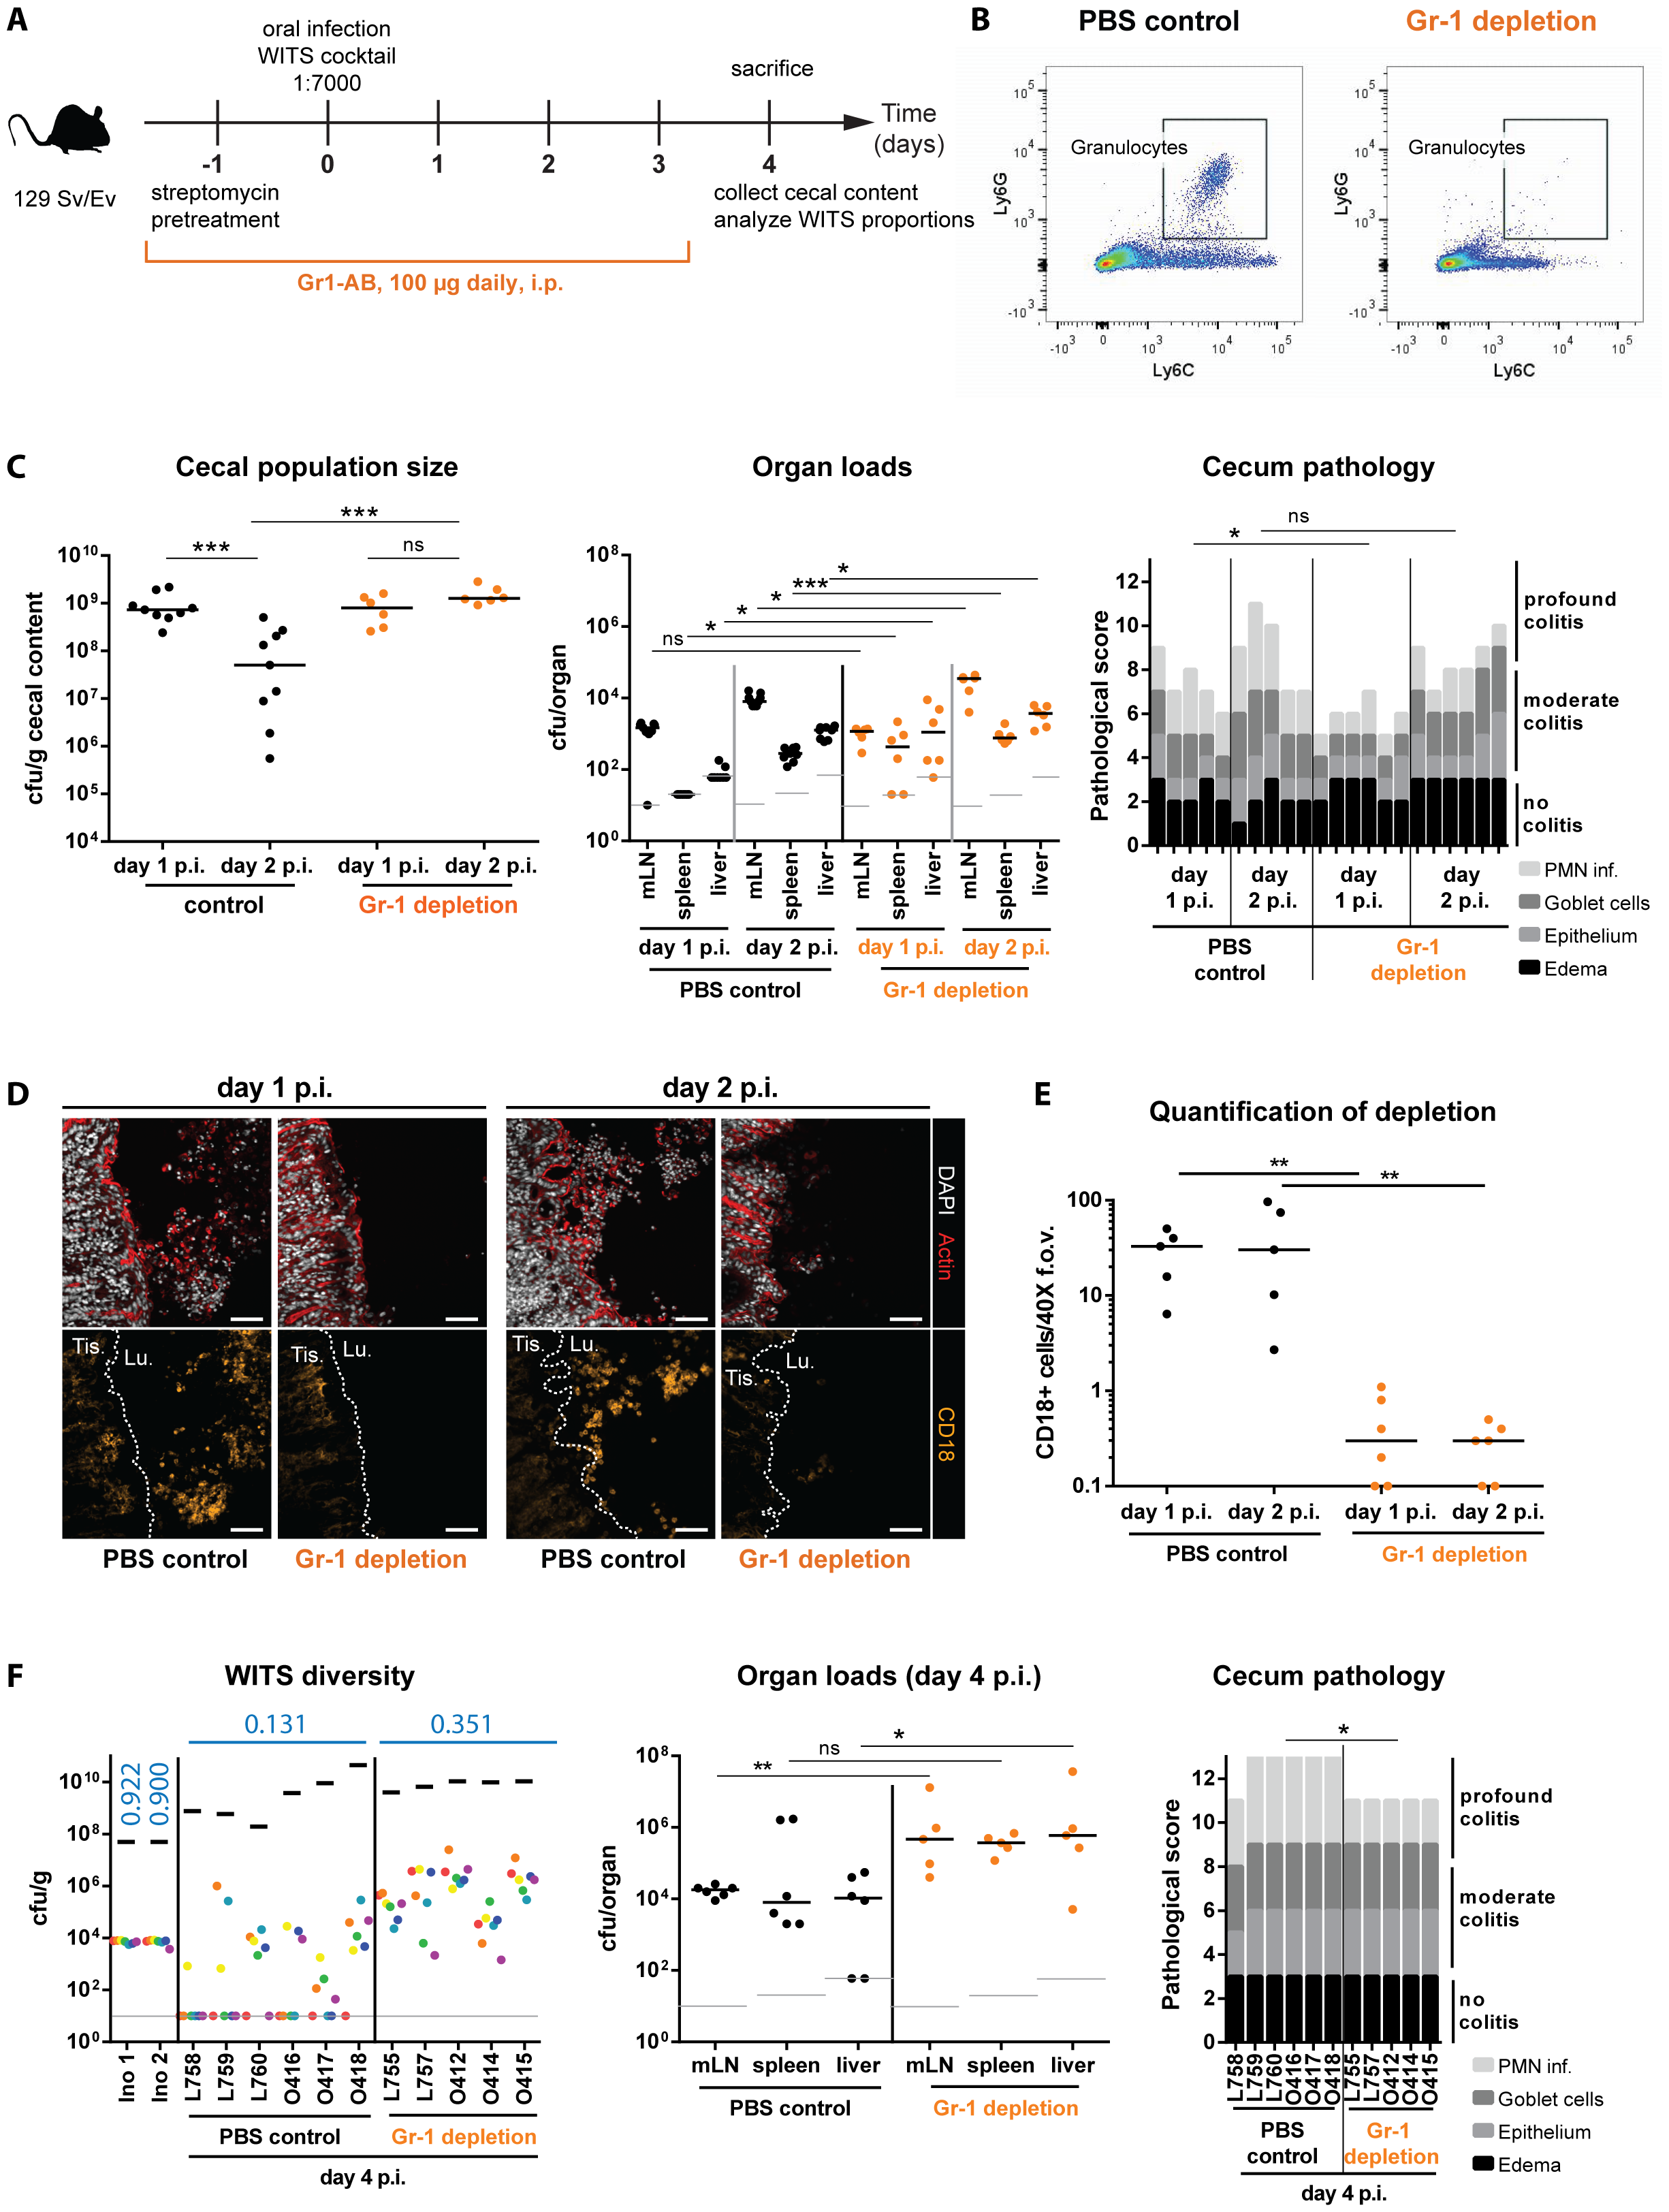 Depletion of Gr1<sup>+</sup>- cells reduces WITS diversity loss and prevents the cecal population crash between day 1 and day 2 p.i.